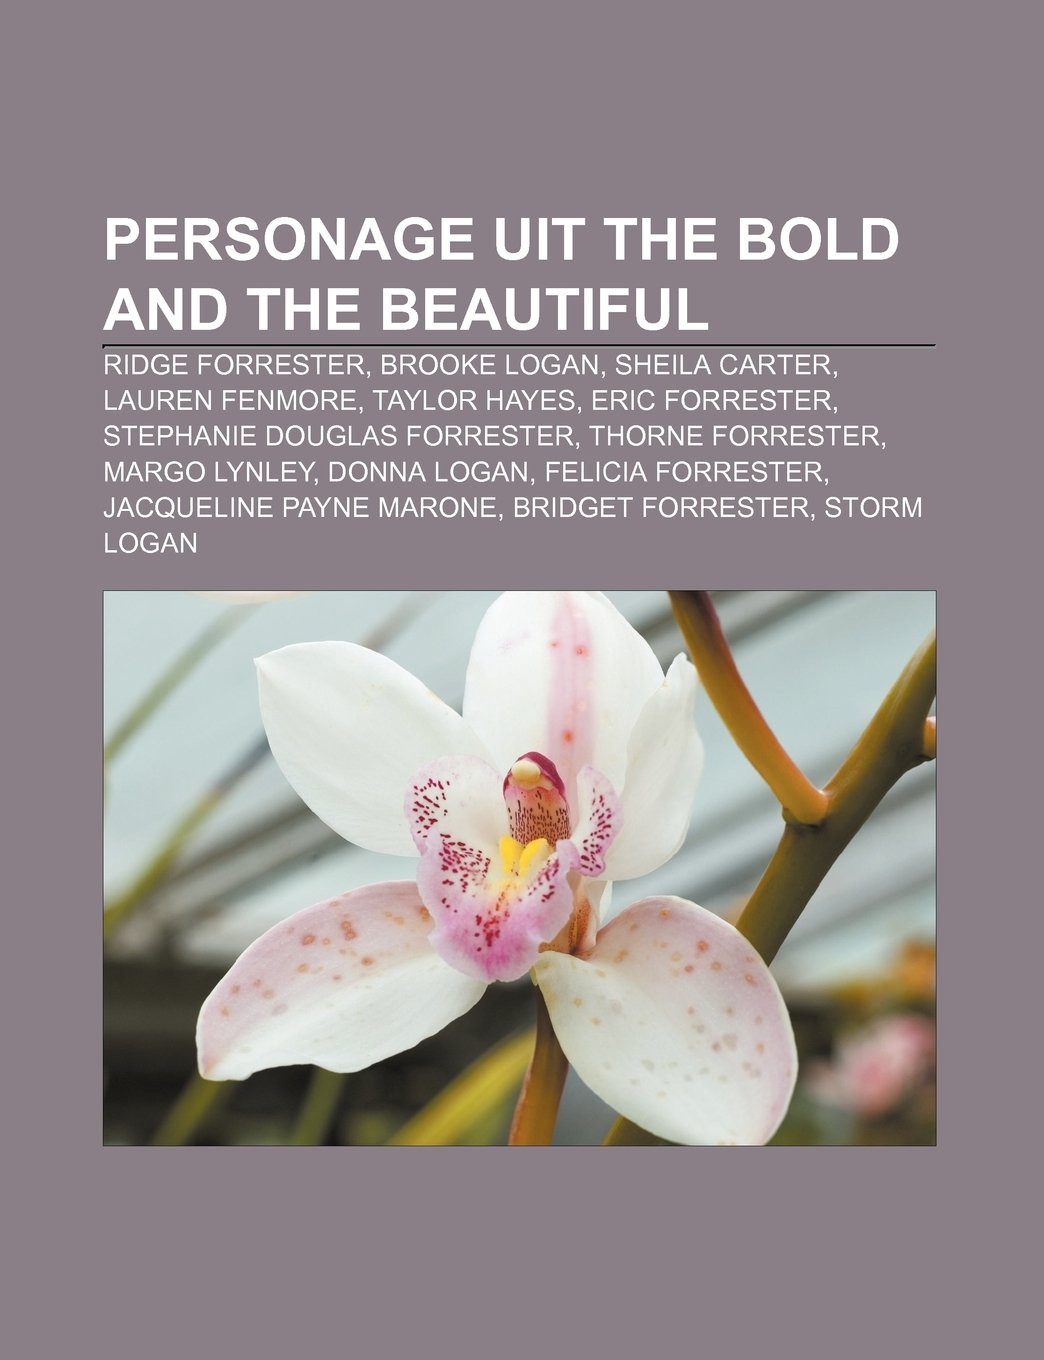 Personage uit The Bold and the Beautiful: Ridge Forrester ...